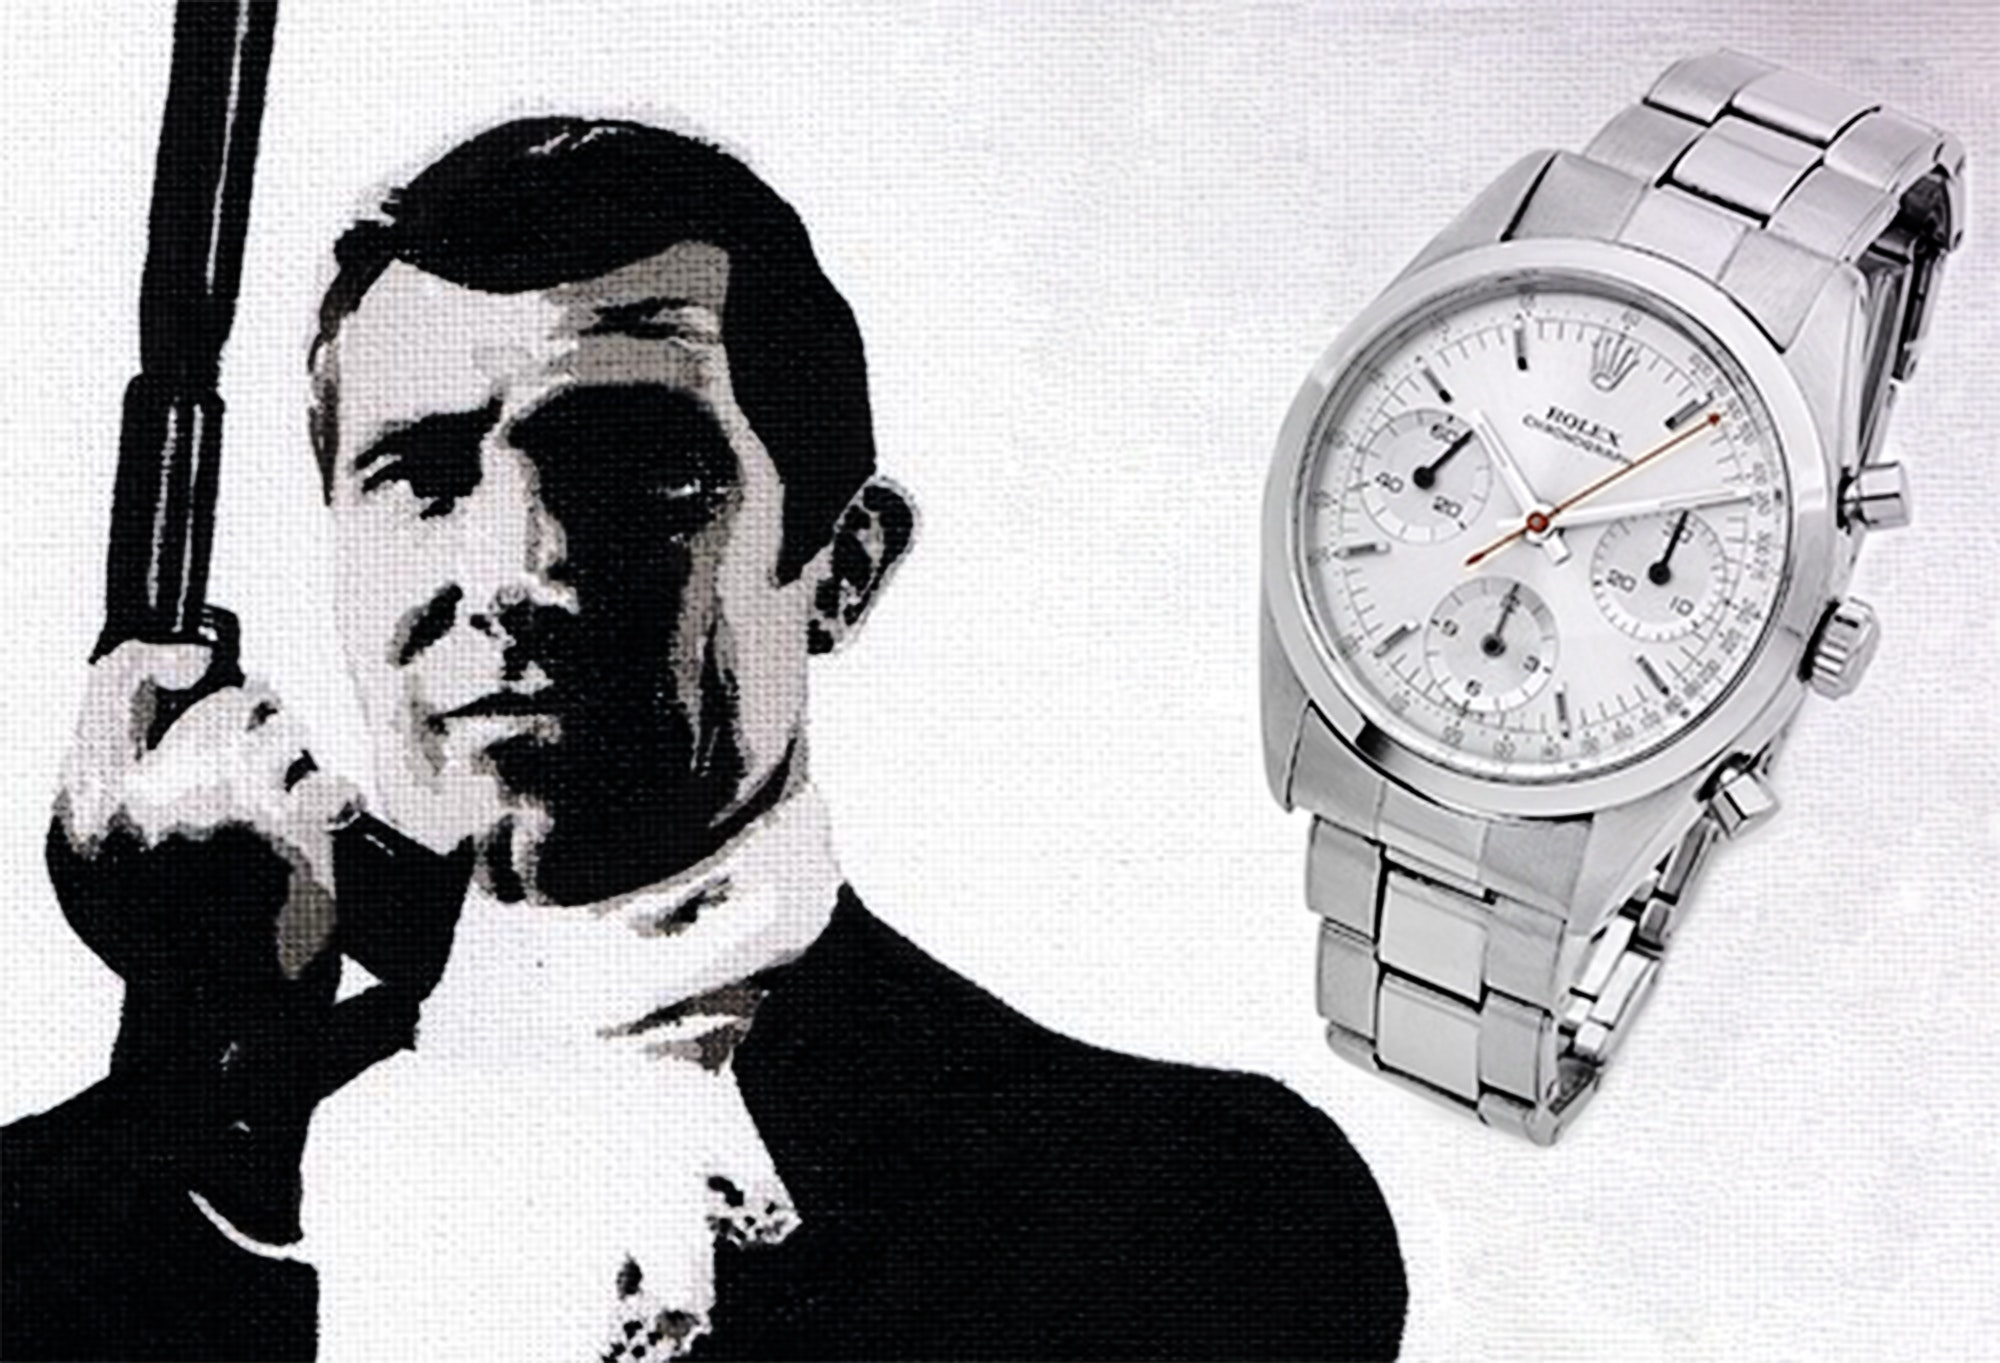 James Bond 007 Pre-Daytona to Go on Auction